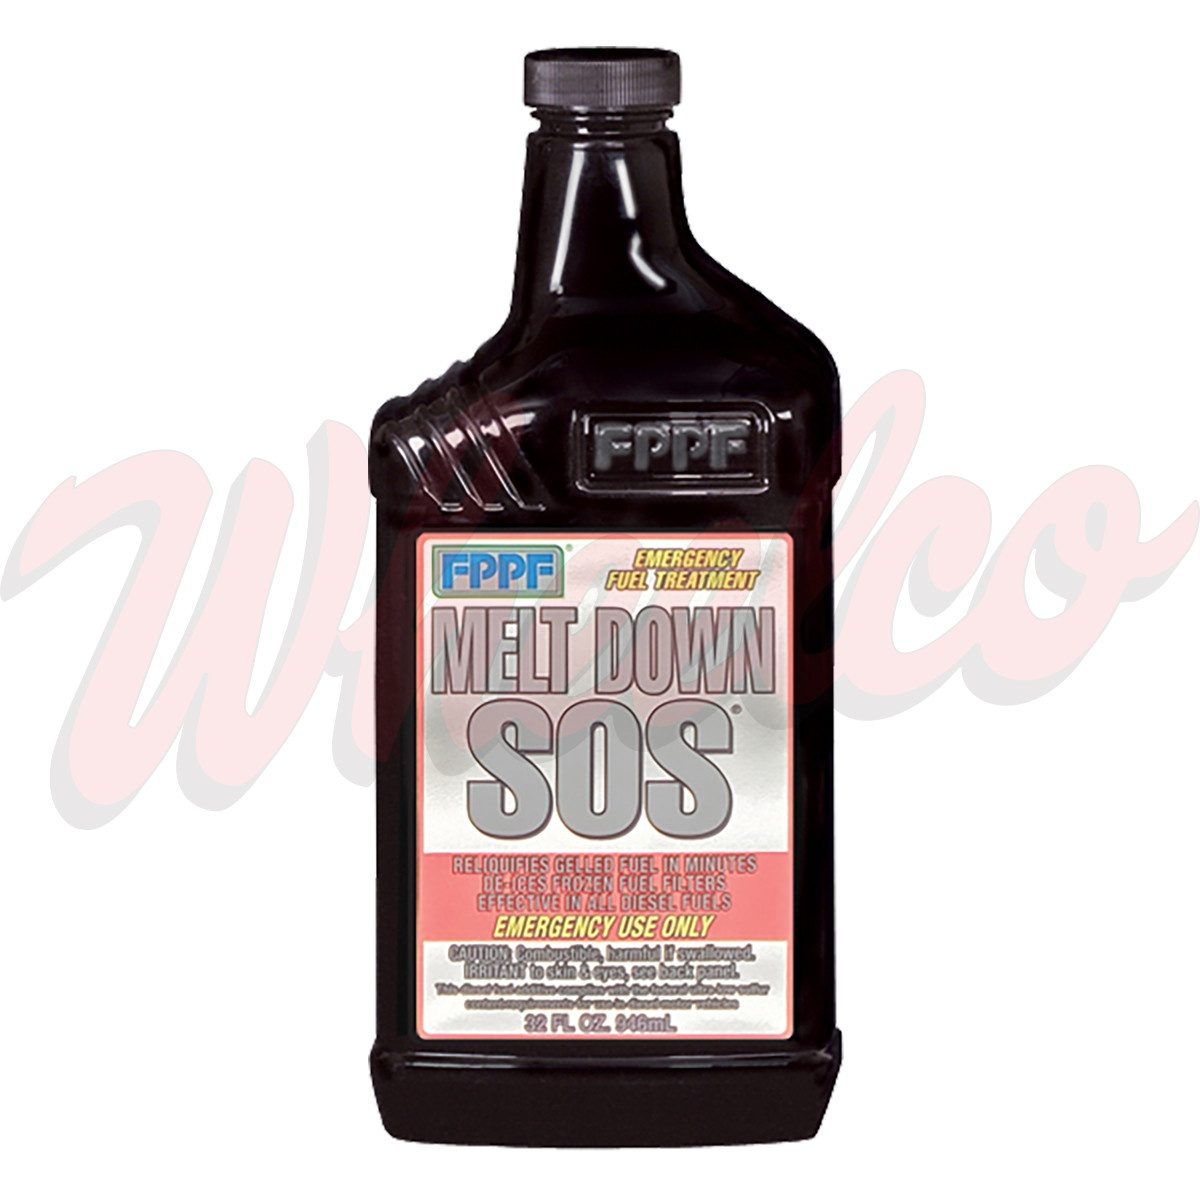 00124_FPPF-Chemical-Co-Inc.Chemicals-Oils-and-Lubricants.Fuel.Additives.1